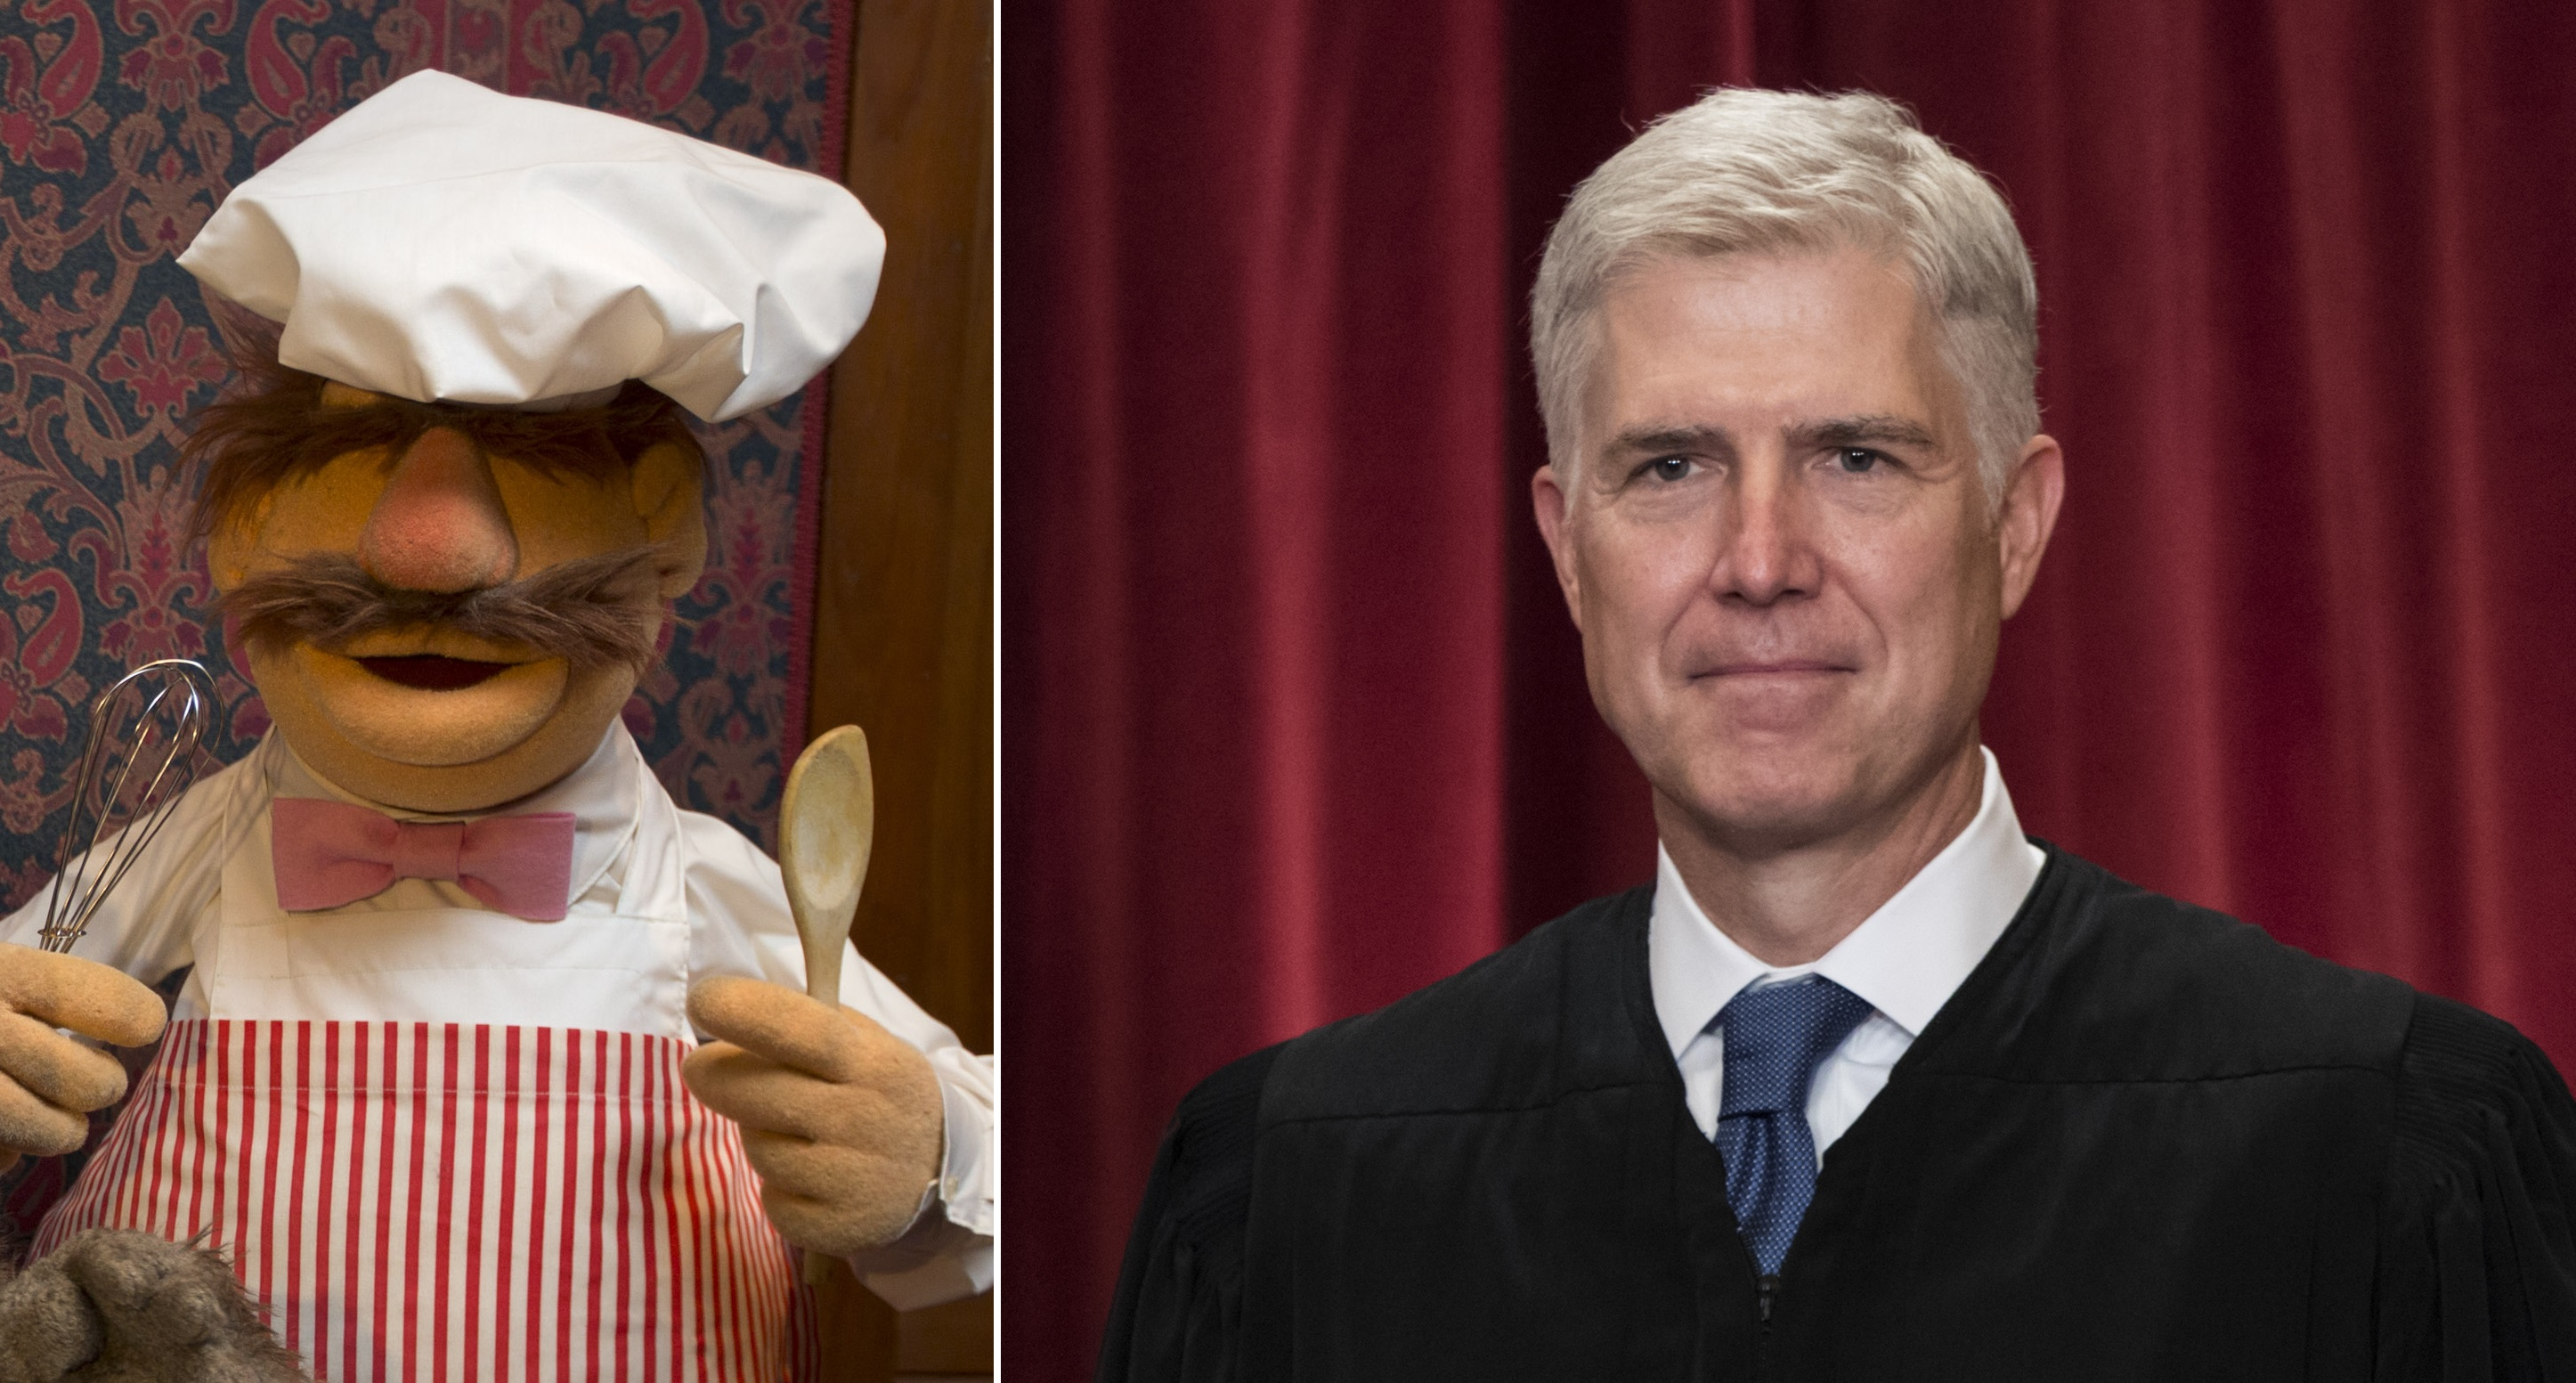 Neil Gorsuch? The Swedish Chef, says Lithwick. (Jacquelyn Martin/AP, J. Scott Applewhite/AP)